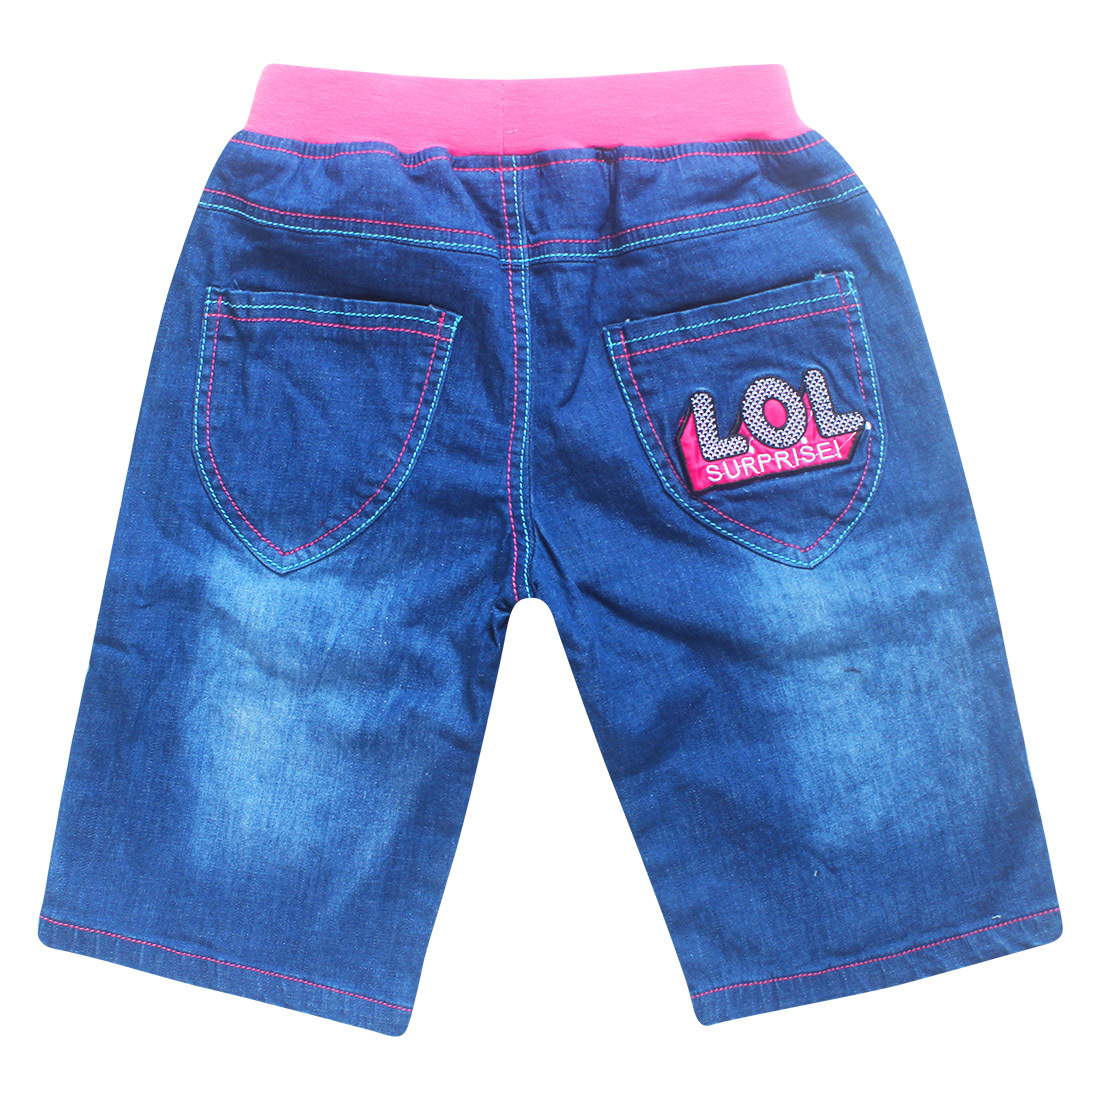 2018 lol roblox Cotton pine tight jeans shorts childrens fashion girl fashion girl fashion baby girl clothes girl dress